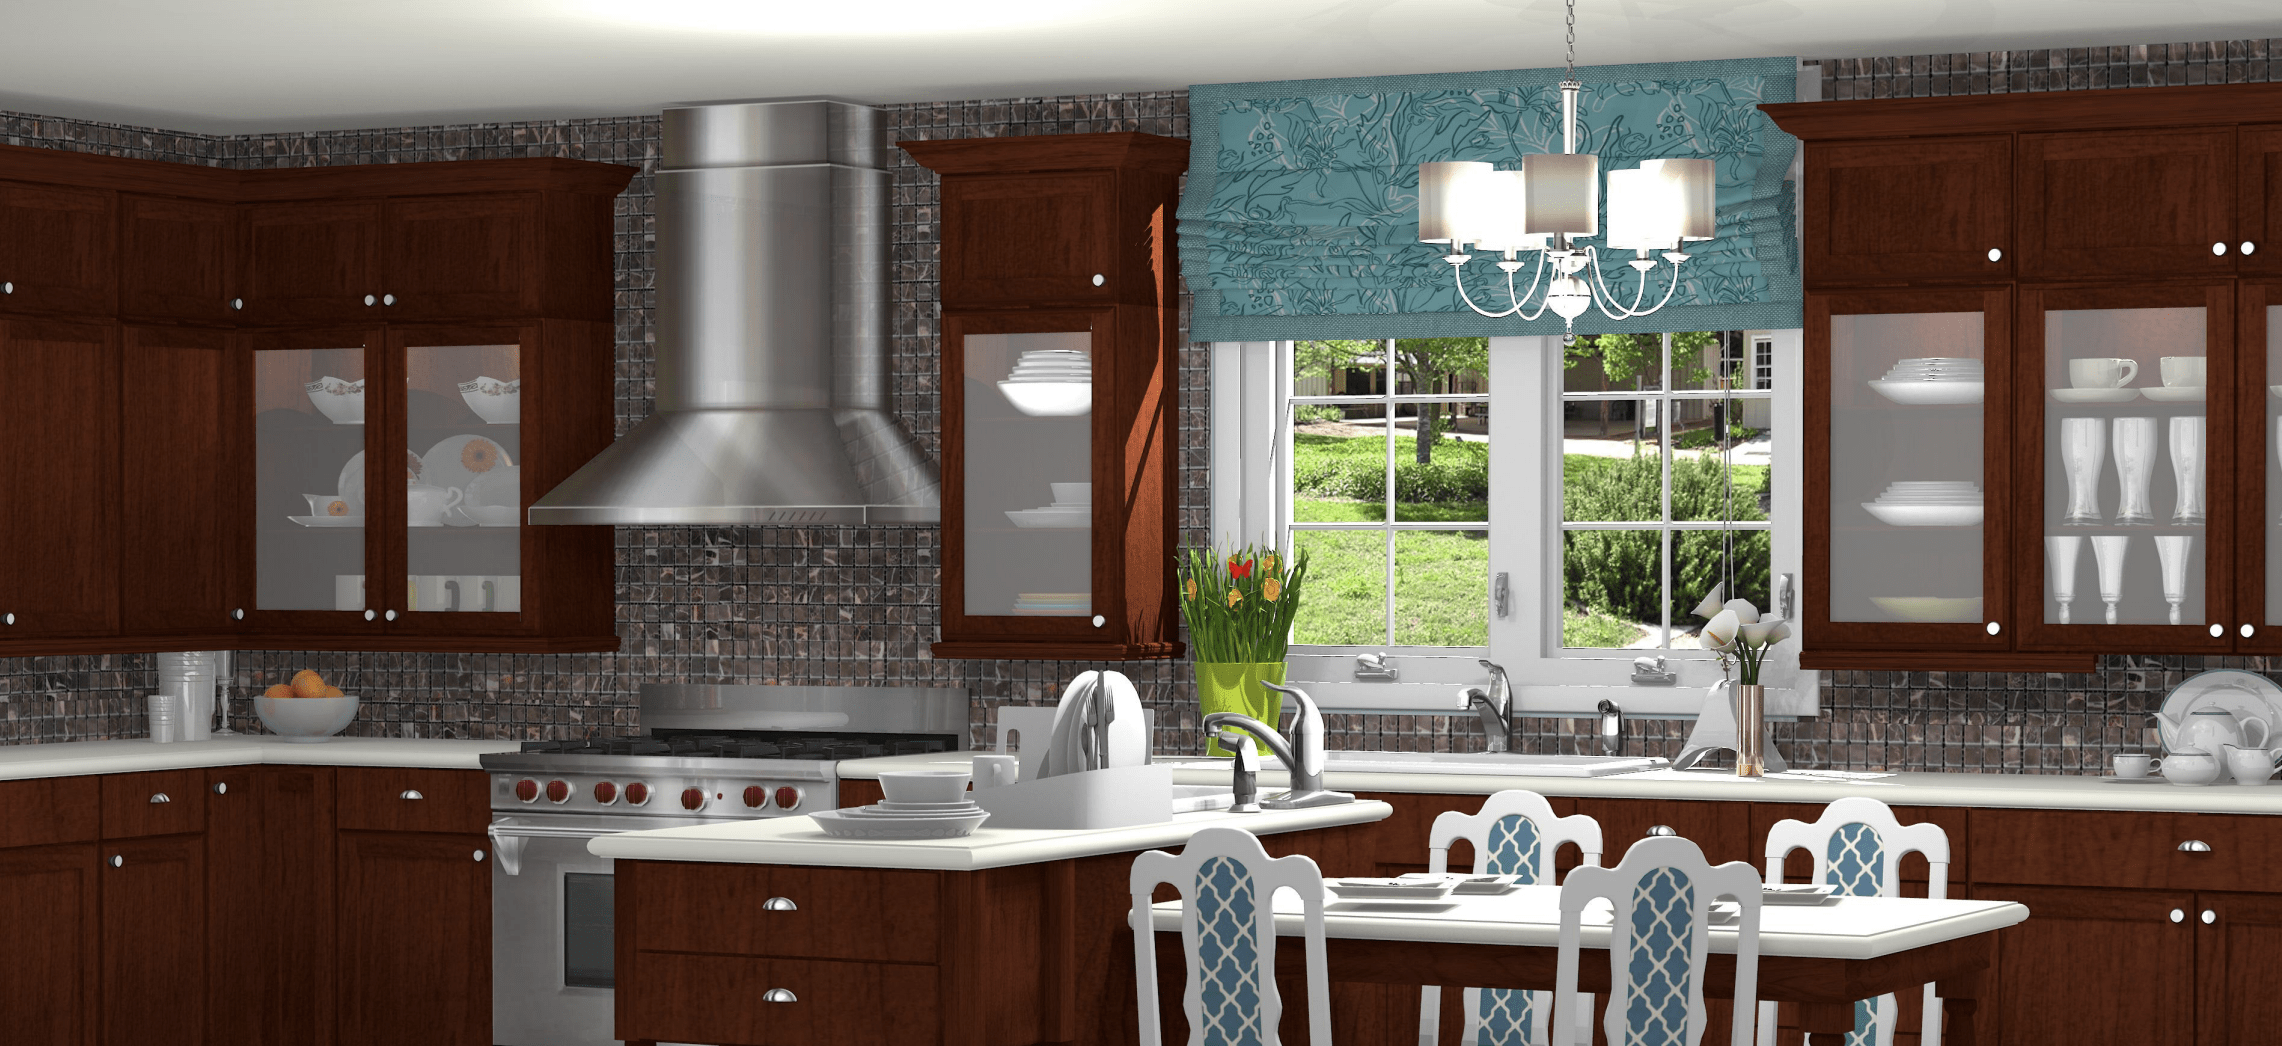 Hgtv Virtual Kitchen Planner Virtual Online Tour Of Hgtv